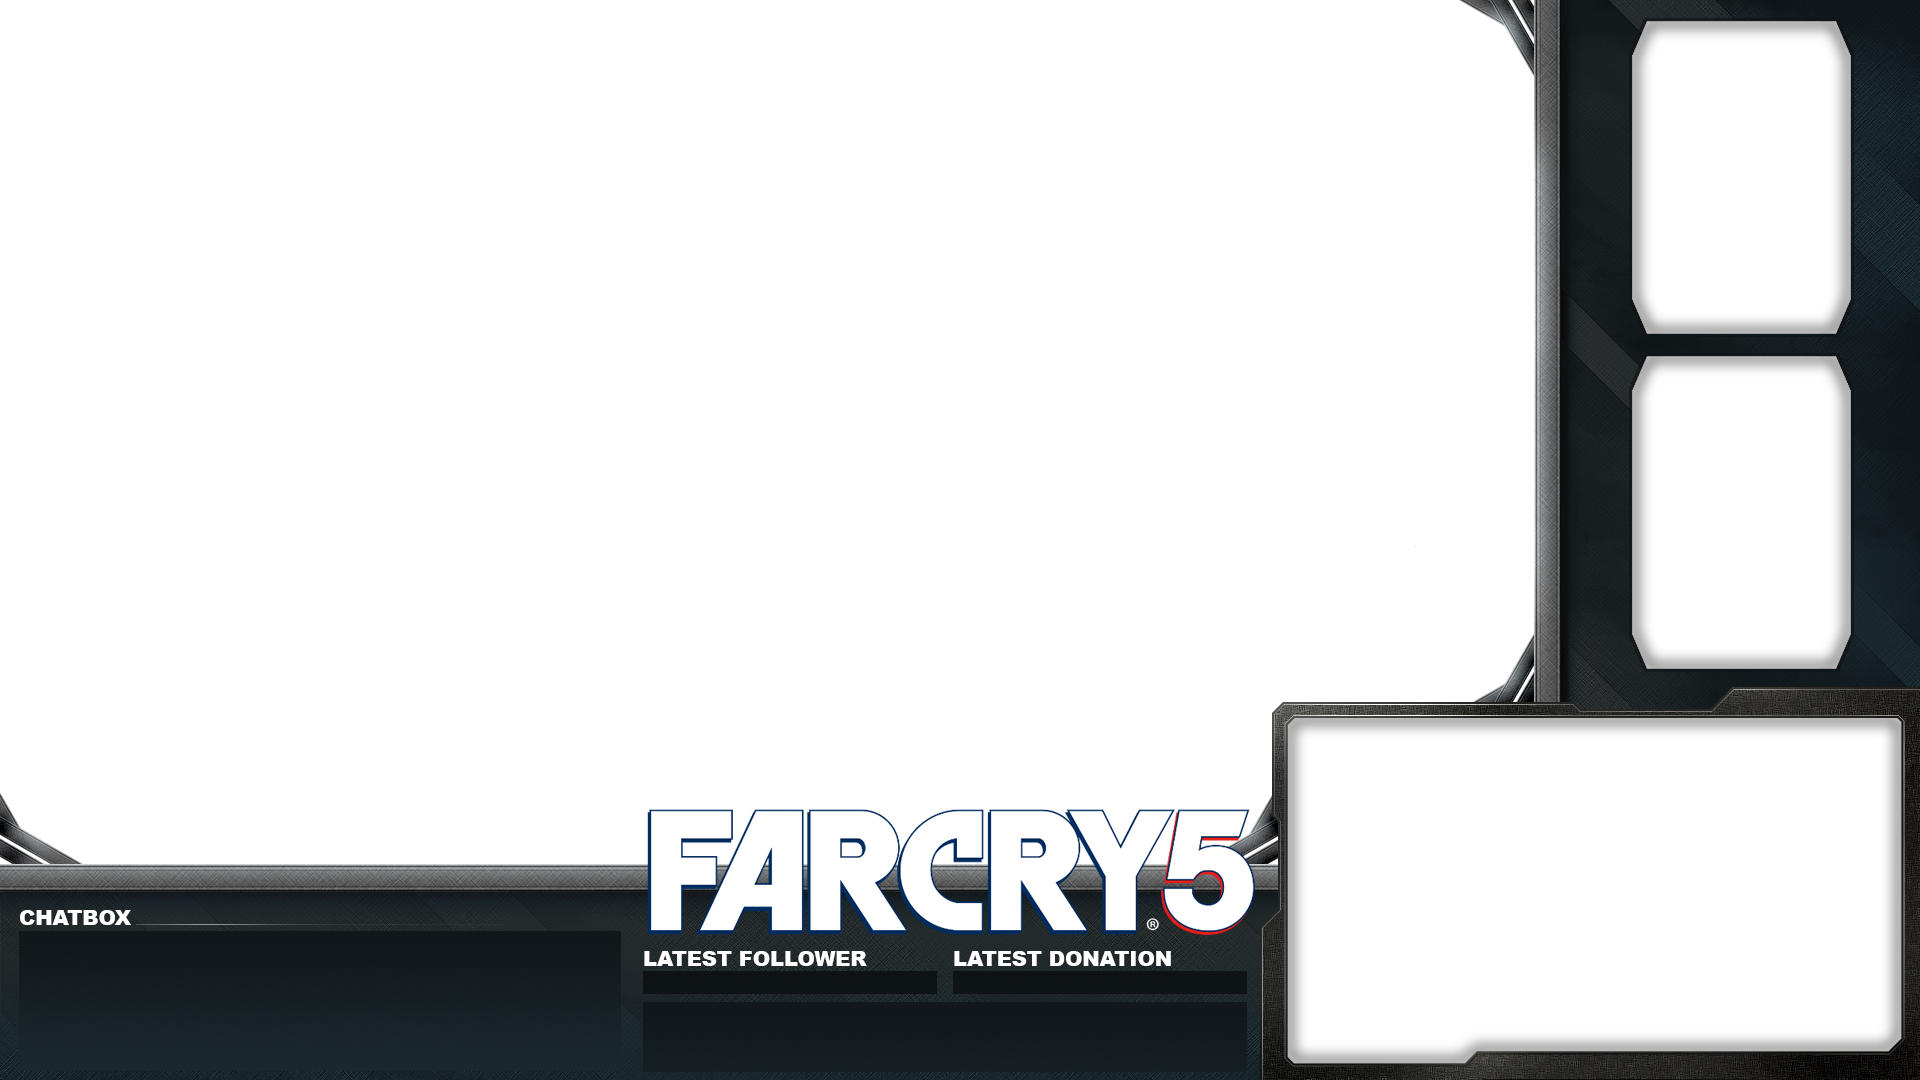 Free twitch overlay png. Farcry for streaming on